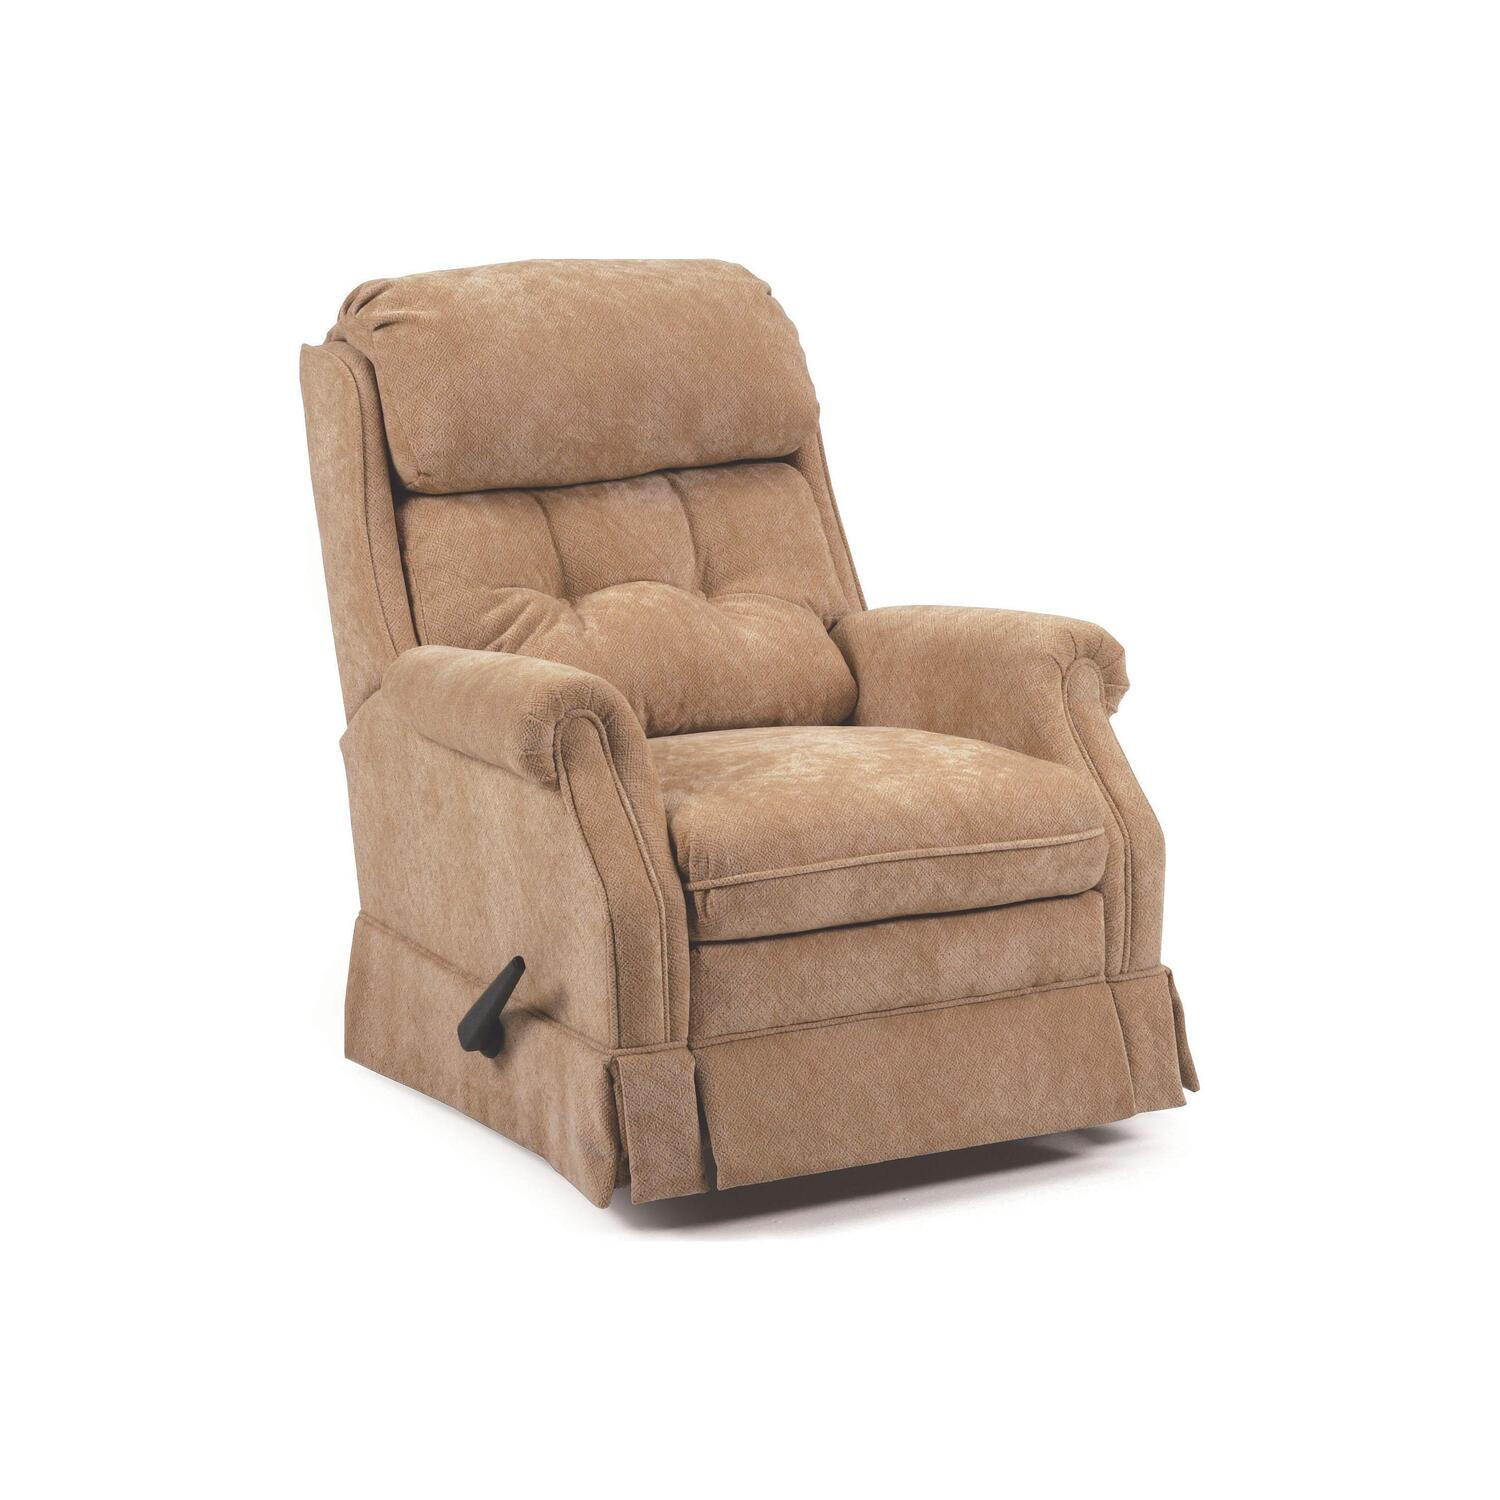 Lane Carolina Swivel Glider Recliner By Oj Commerce